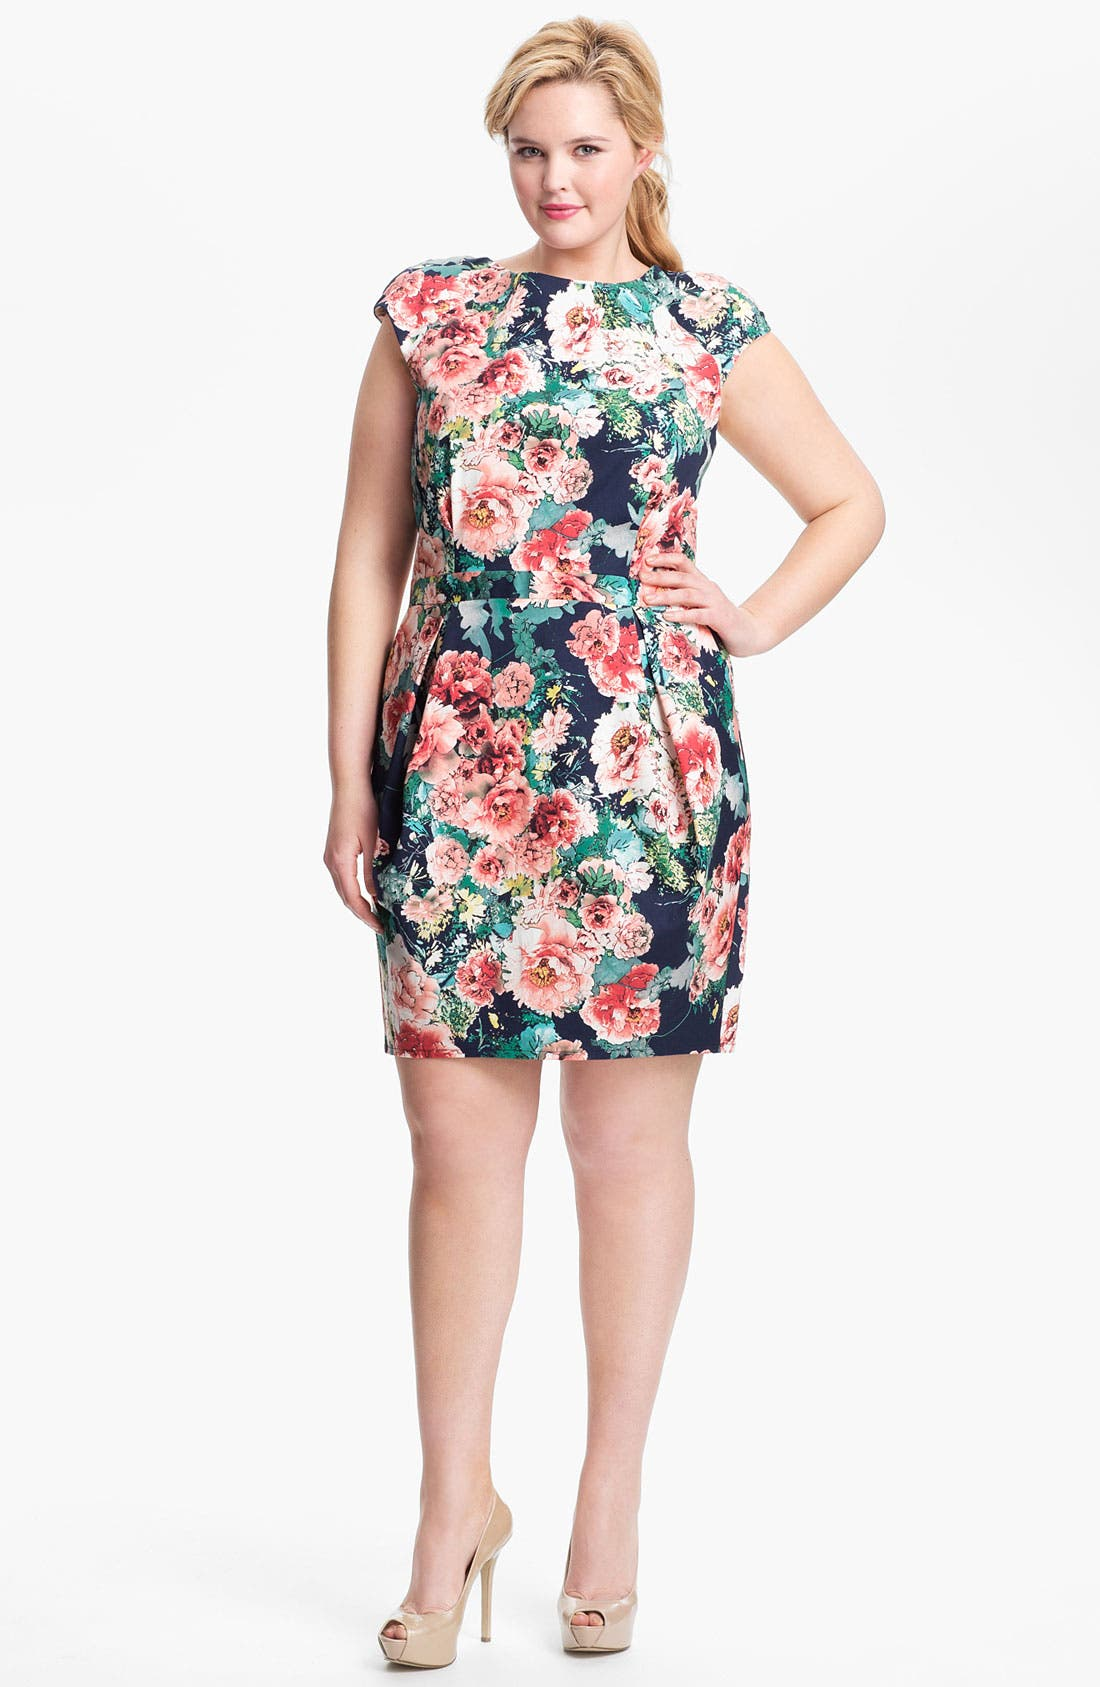 Alternate Image 1 Selected - A.B.S. by Allen Schwartz Print Sheath Dress (Plus Size) (Online Only)